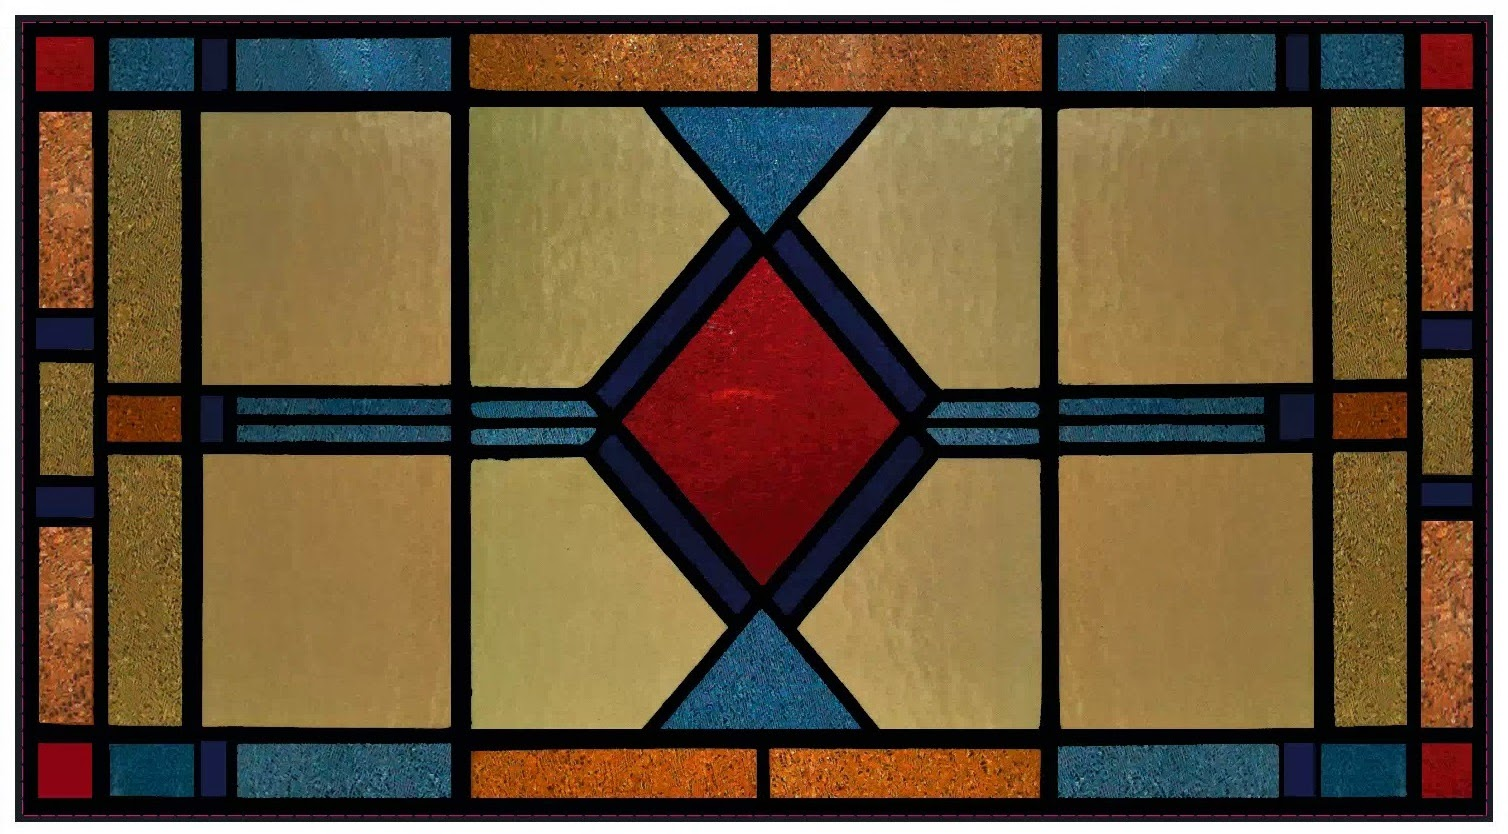 how to make a stained glass pattern from a photo